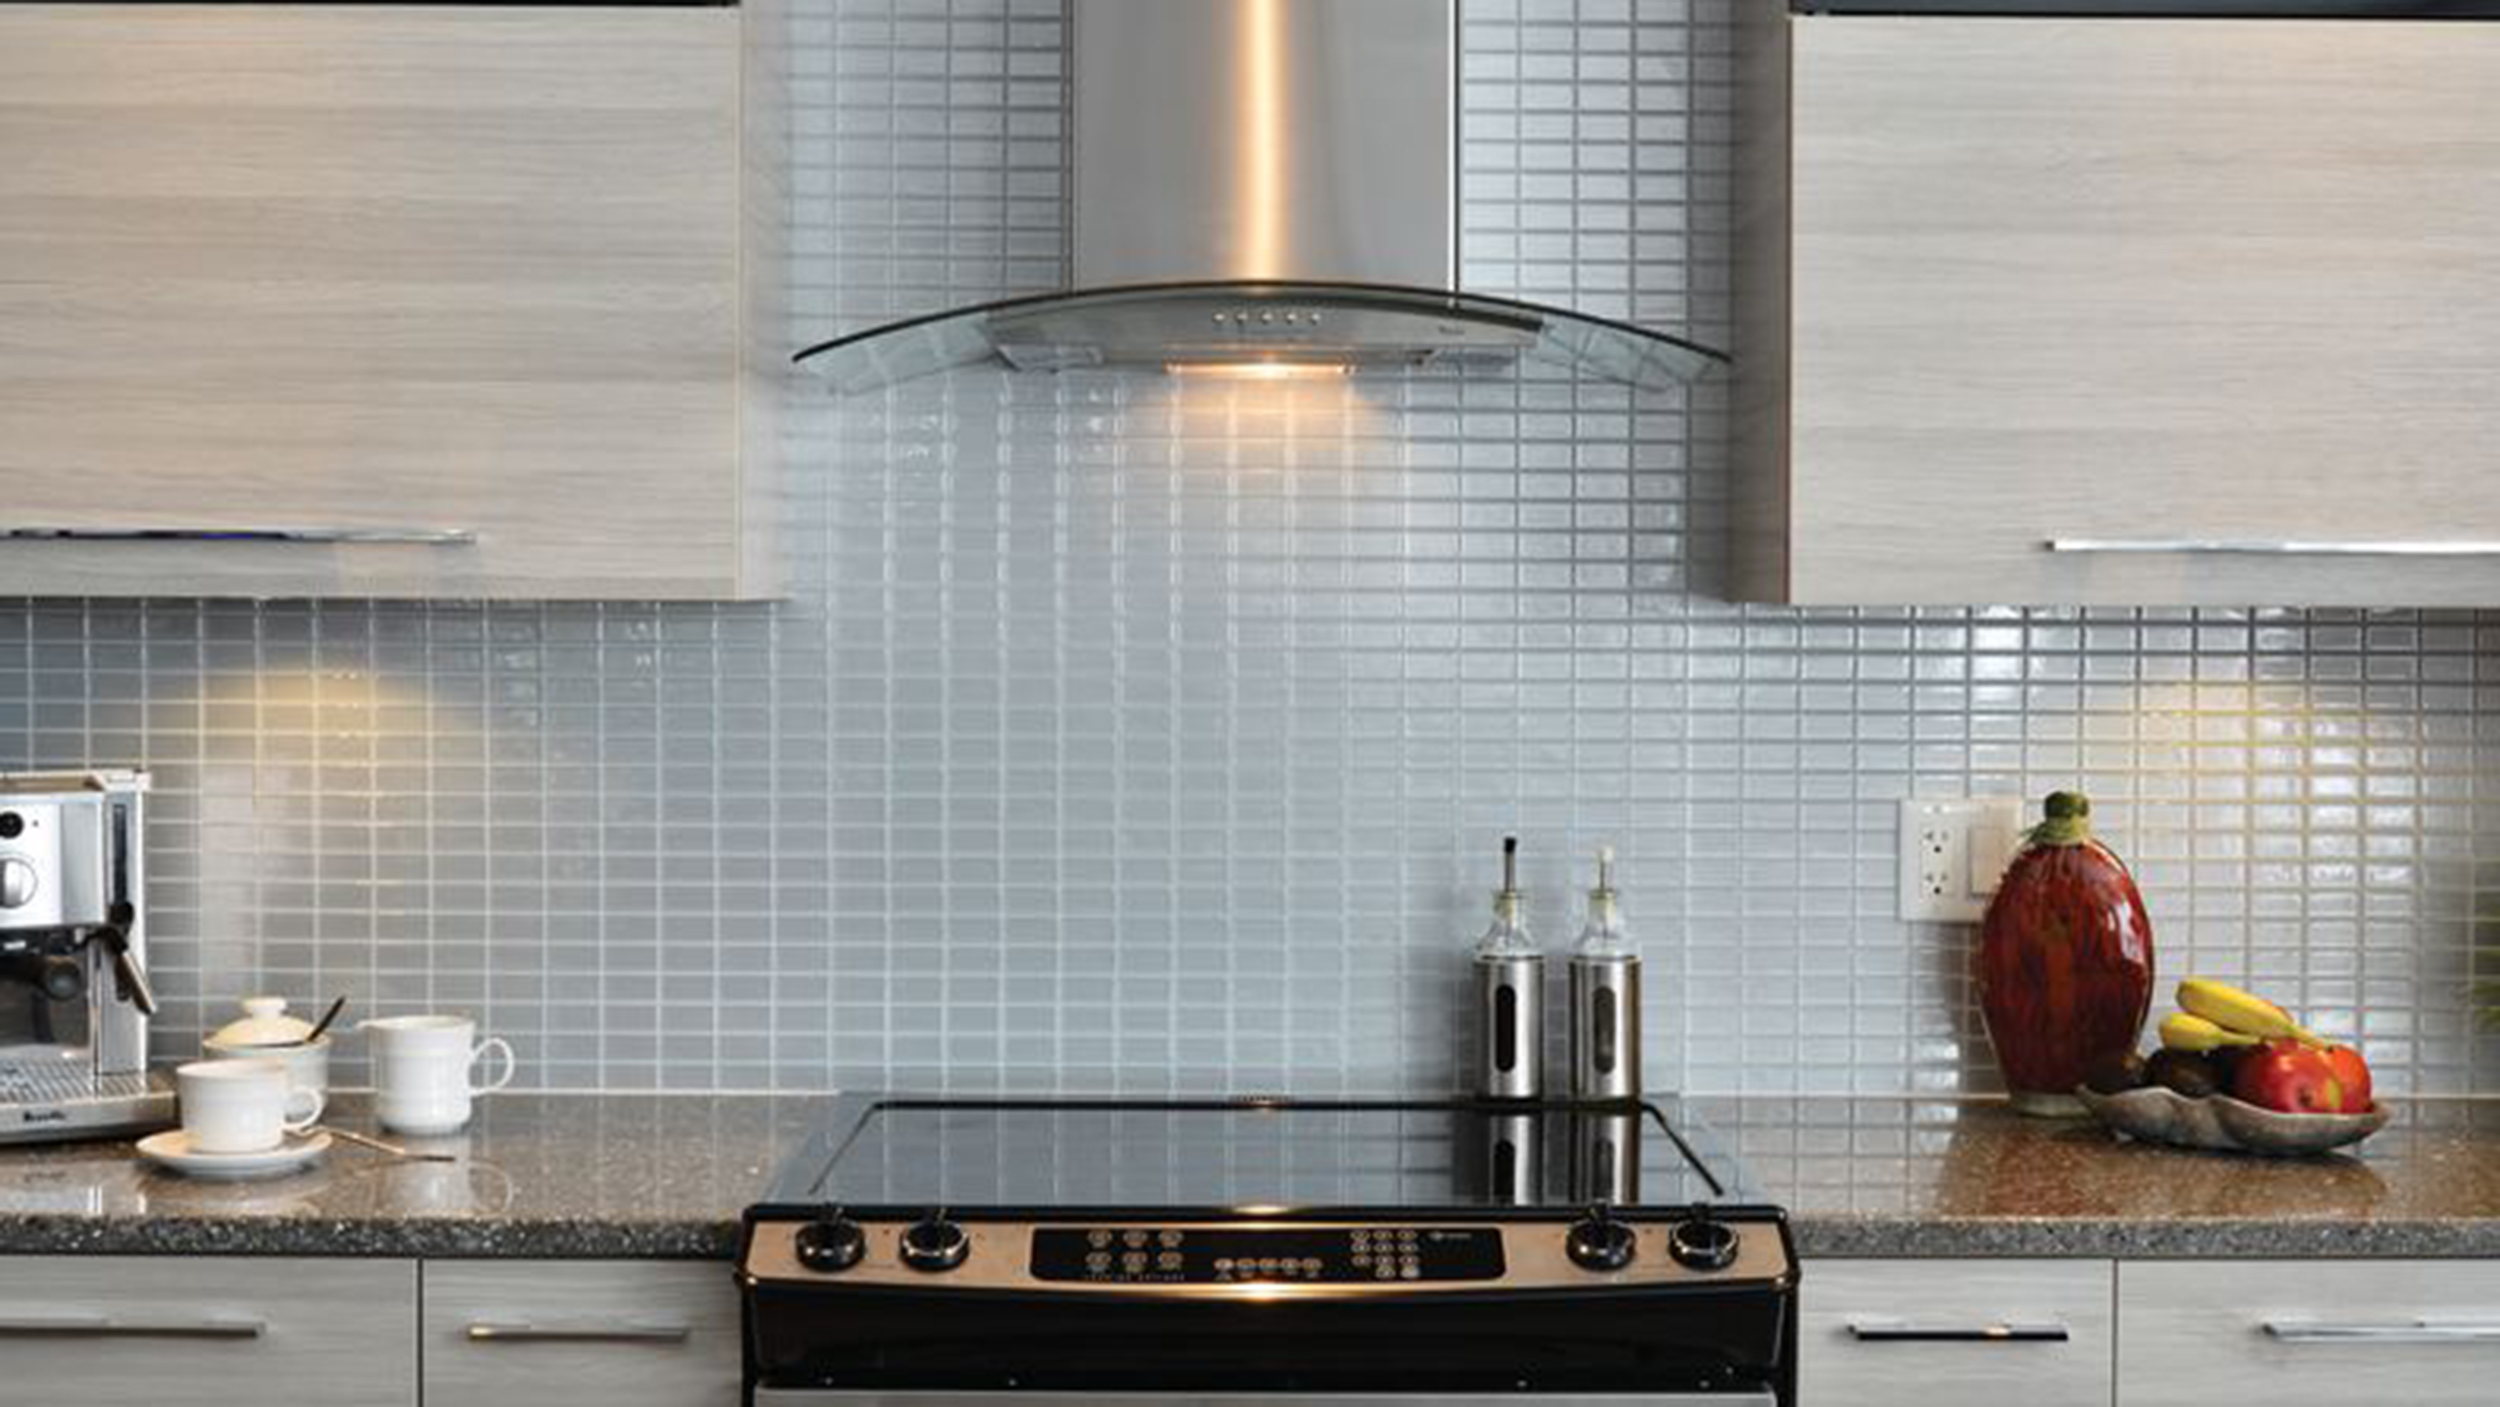 Kitchen tile makeover use smart tiles to update your backsplash dailygadgetfo Image collections